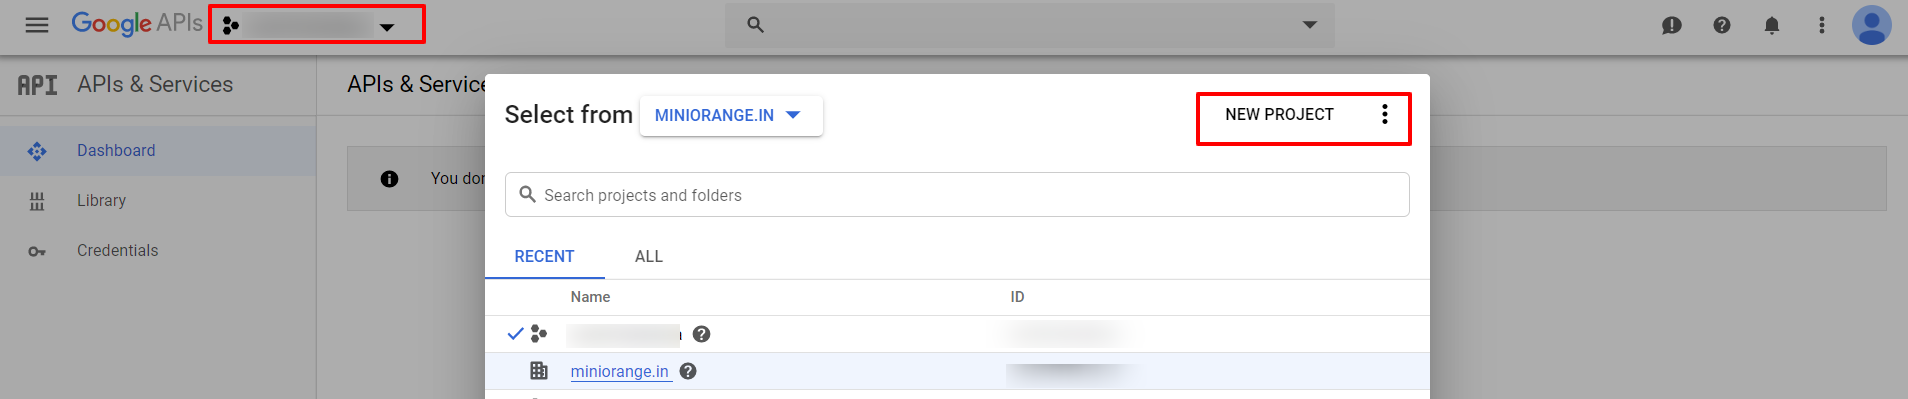 OAuth/OpenID/OIDC Single Sign On (SSO), Google Apps SSO Login Setup Google app